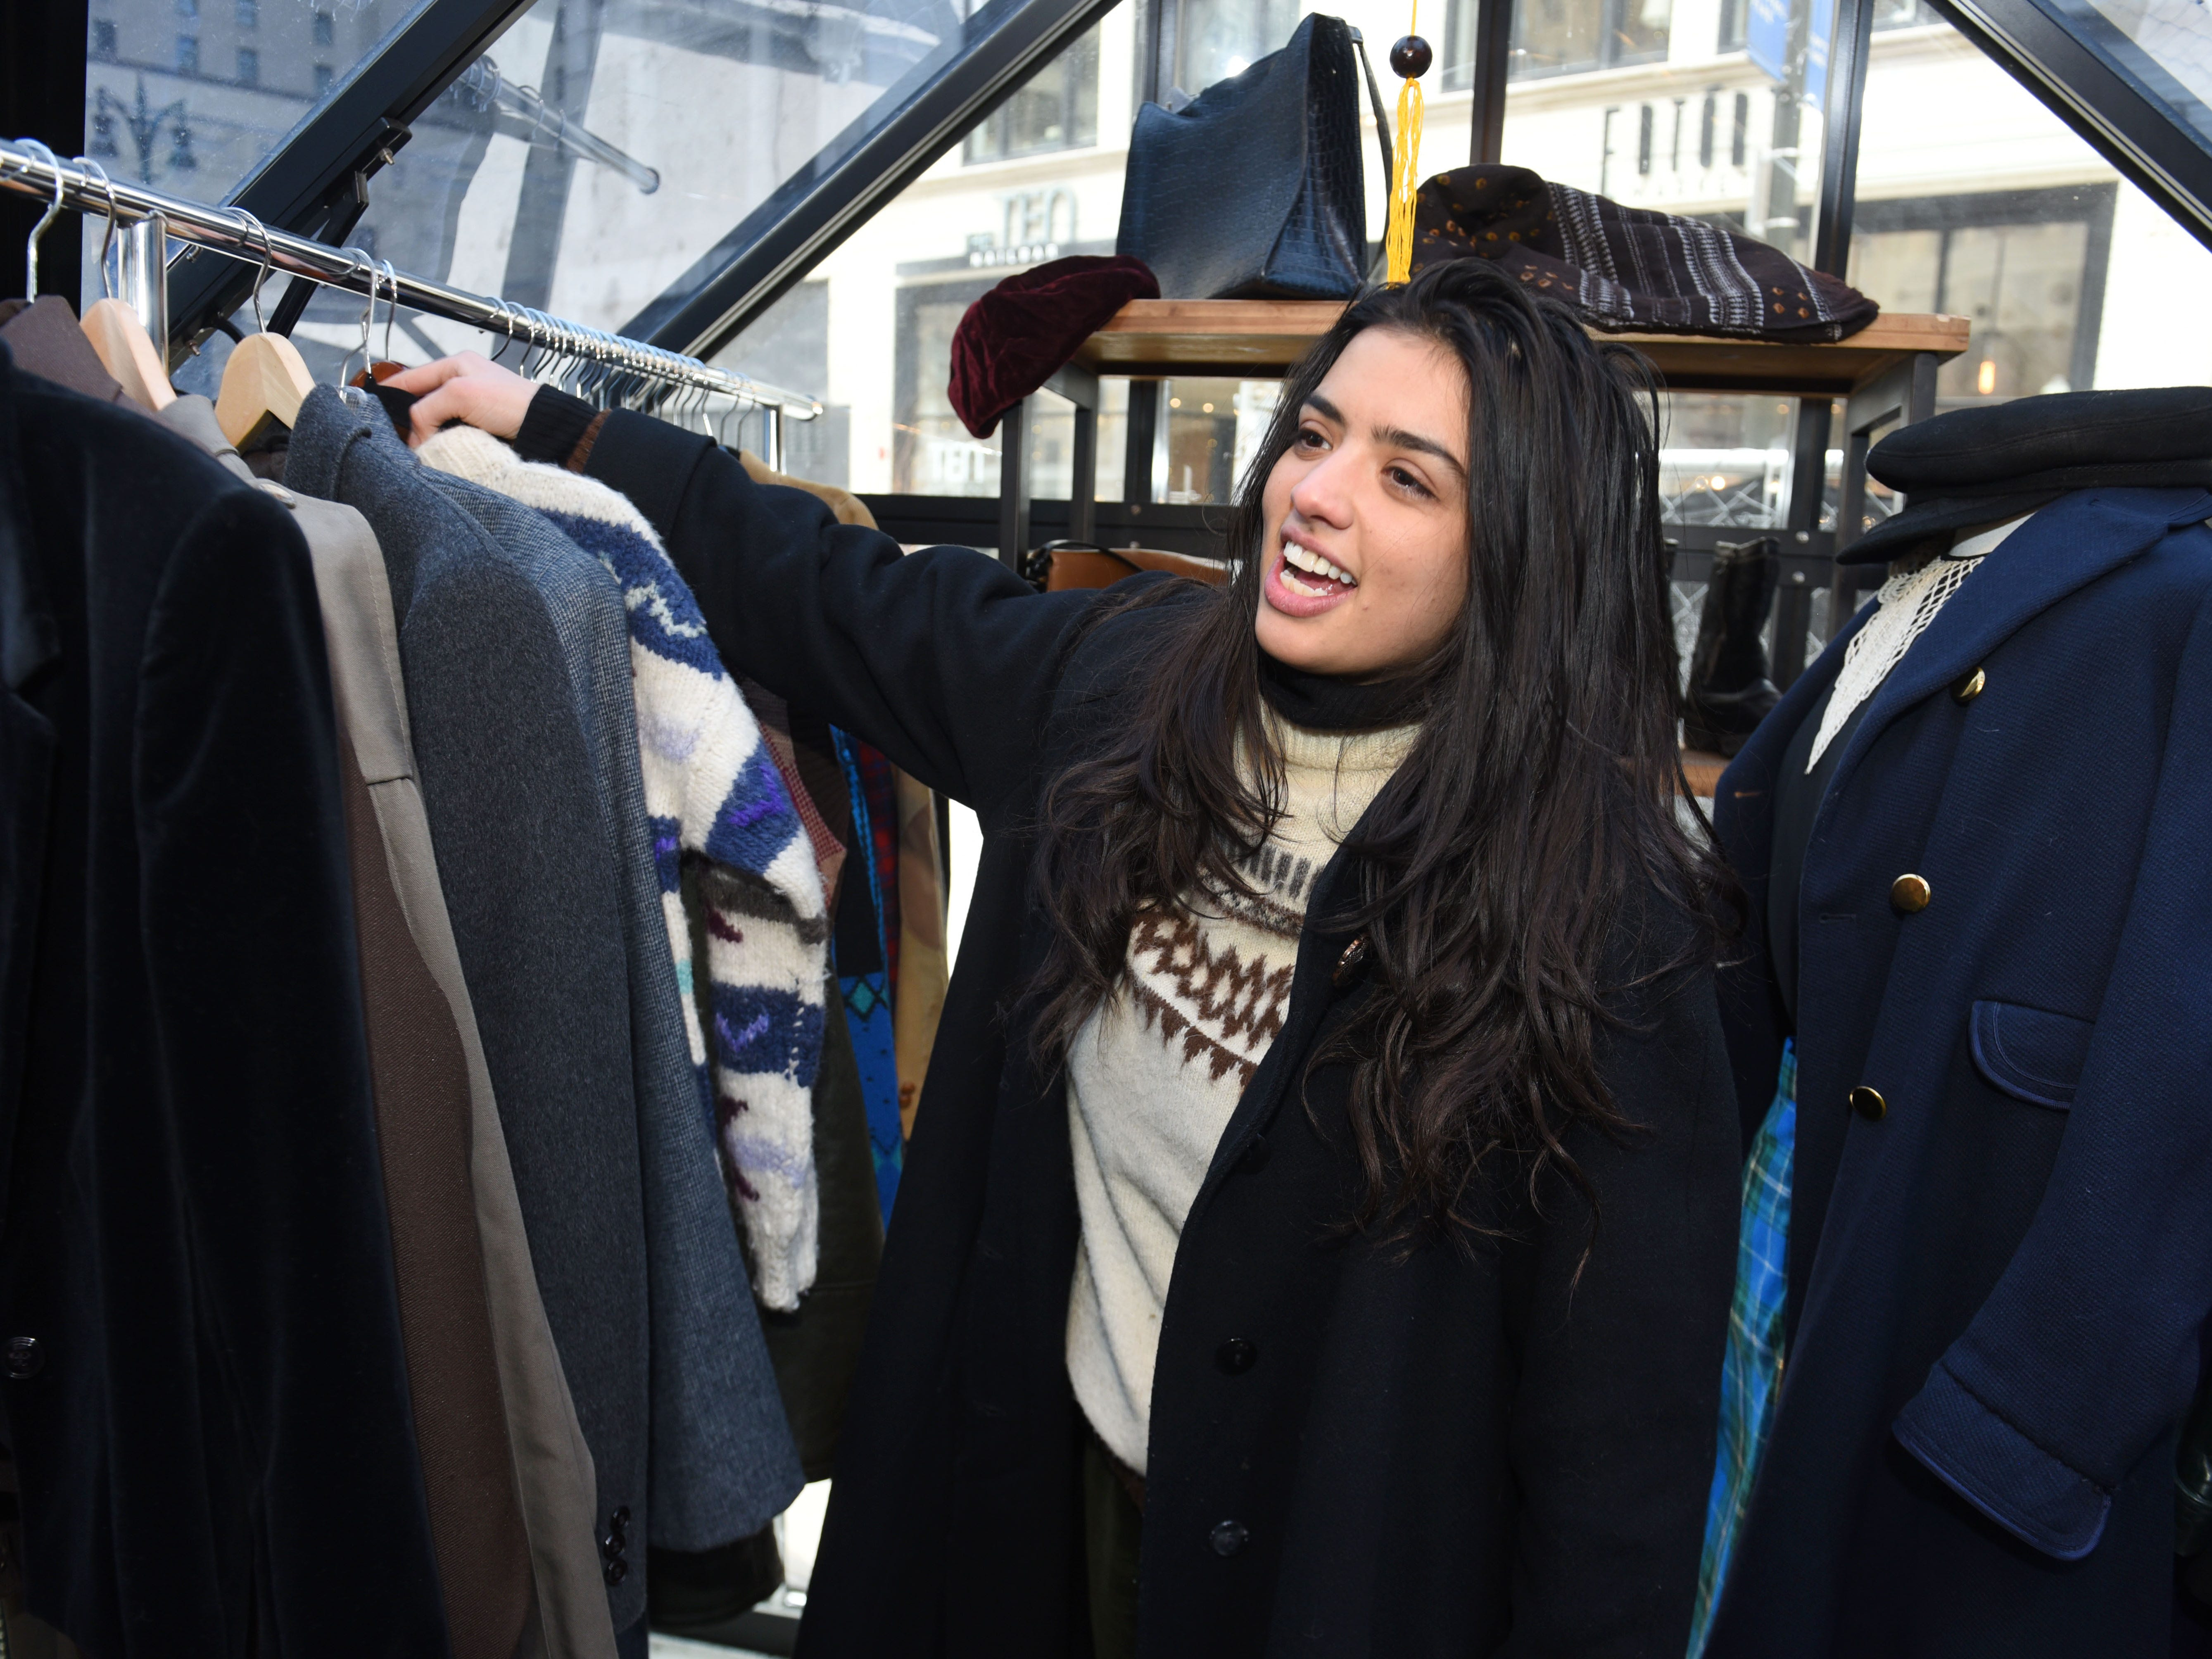 Emily Bernstein, owner of The Velvet Tower, a pop-up store in Capitol Park in downtown Detroit,  will soon move into a new space in the Shinola Hotel.